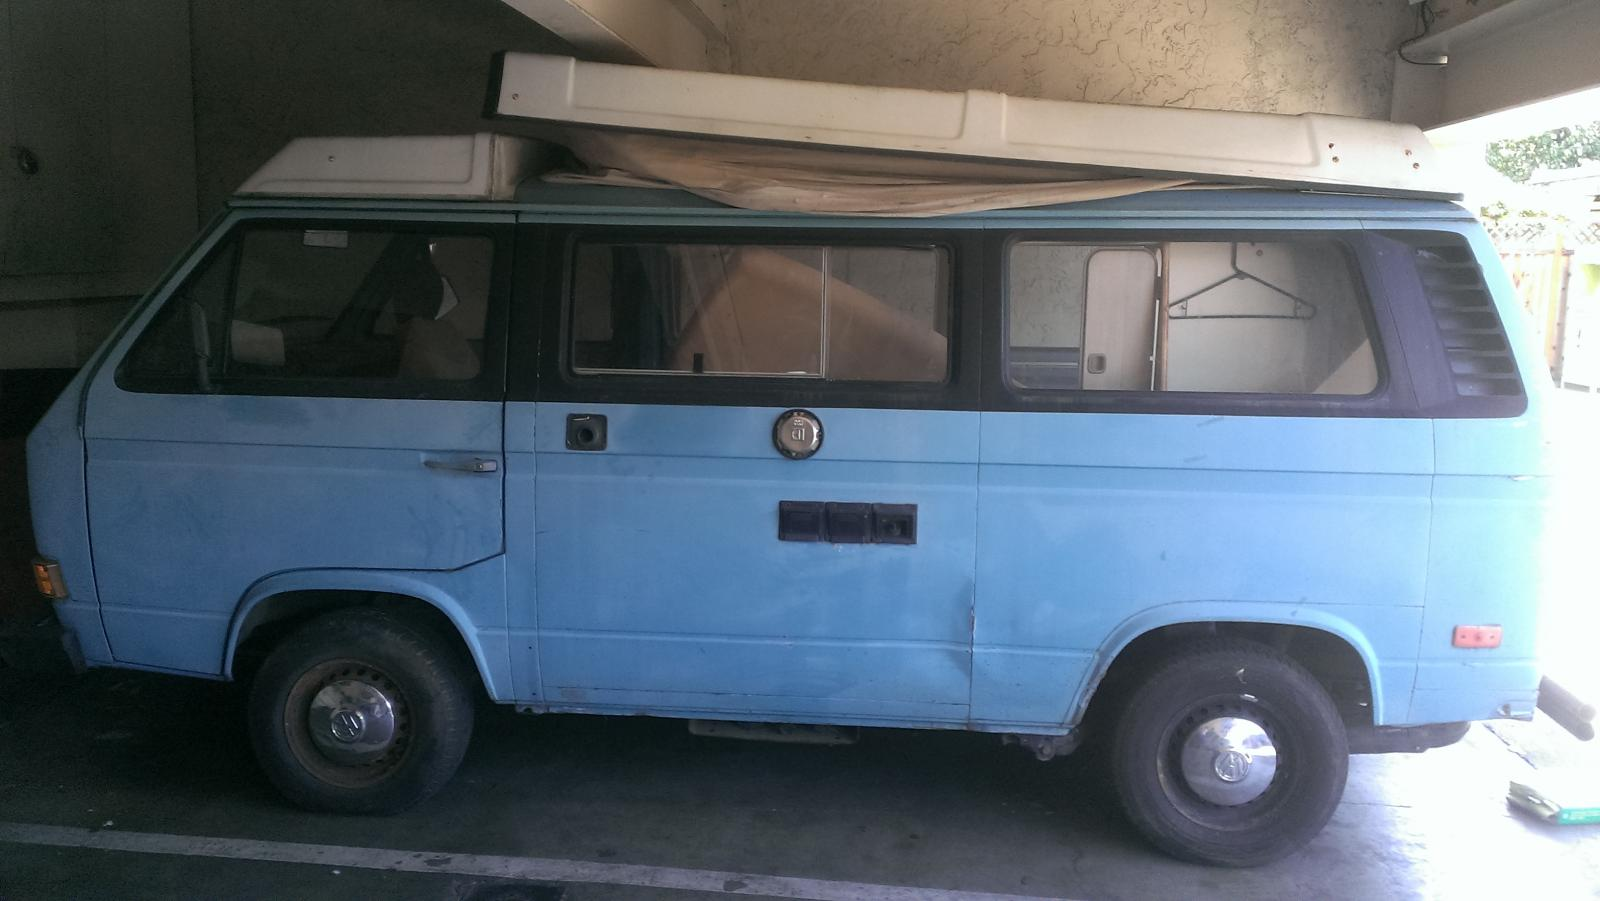 Vanagon View Topic Mrcools 1980 L Camper But Wiring The Alternator Using Blue Exciter Wire Coming Image May Have Been Reduced In Size Click To Fullscreen